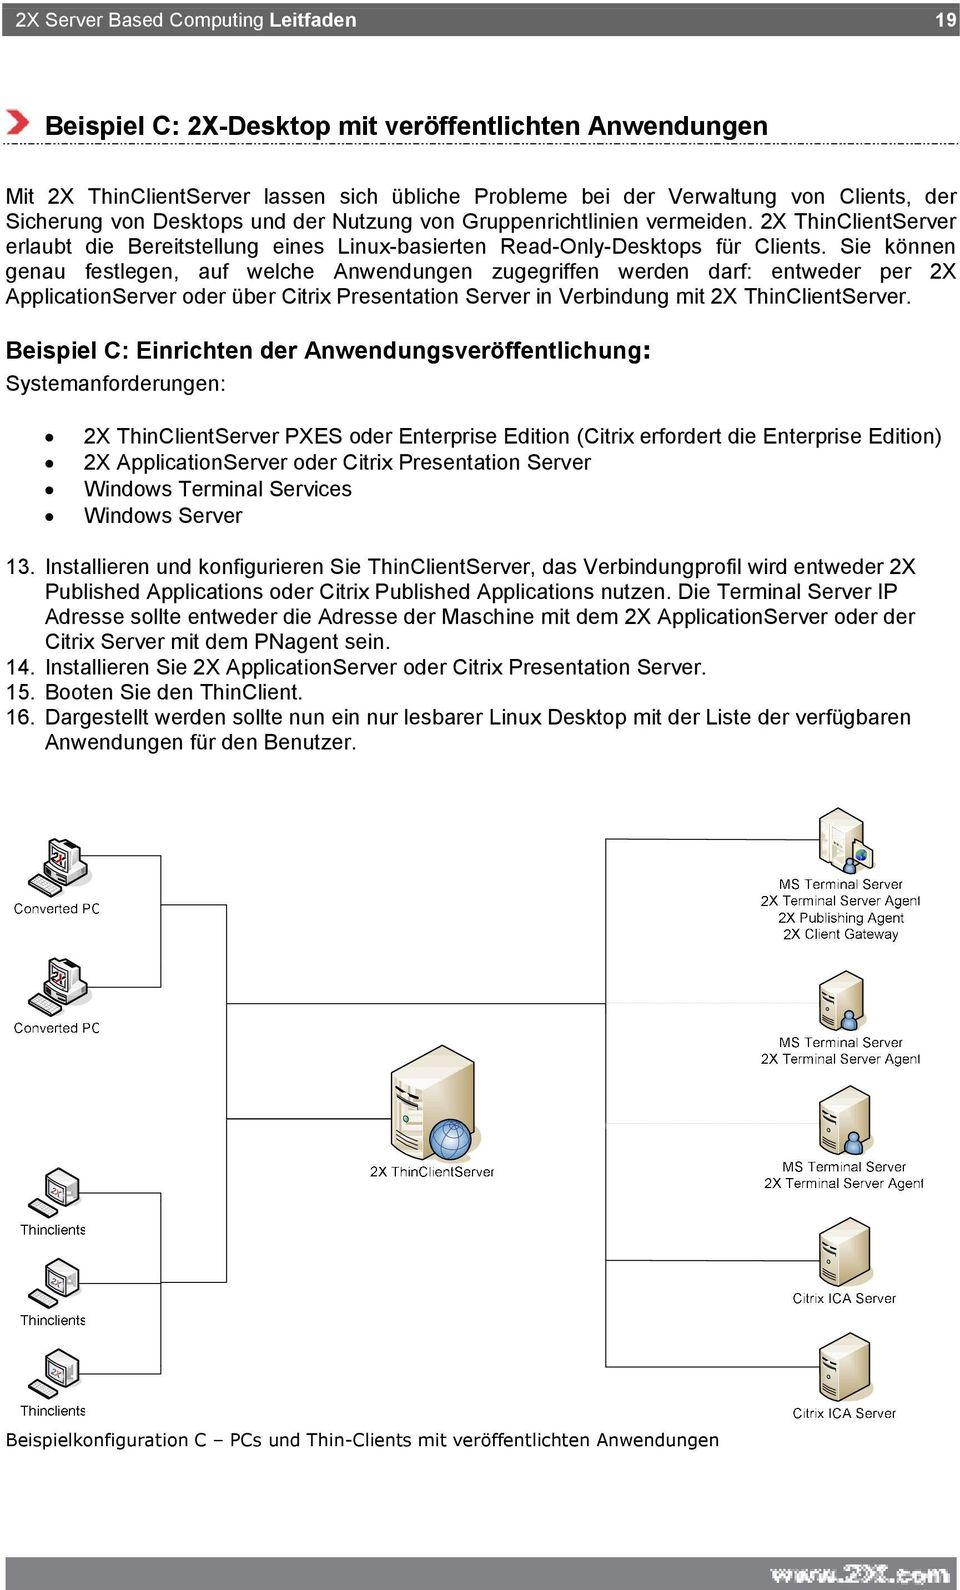 Sie können genau festlegen, auf welche Anwendungen zugegriffen werden darf: entweder per 2X ApplicationServer oder über Citrix Presentation Server in Verbindung mit 2X ThinClientServer.